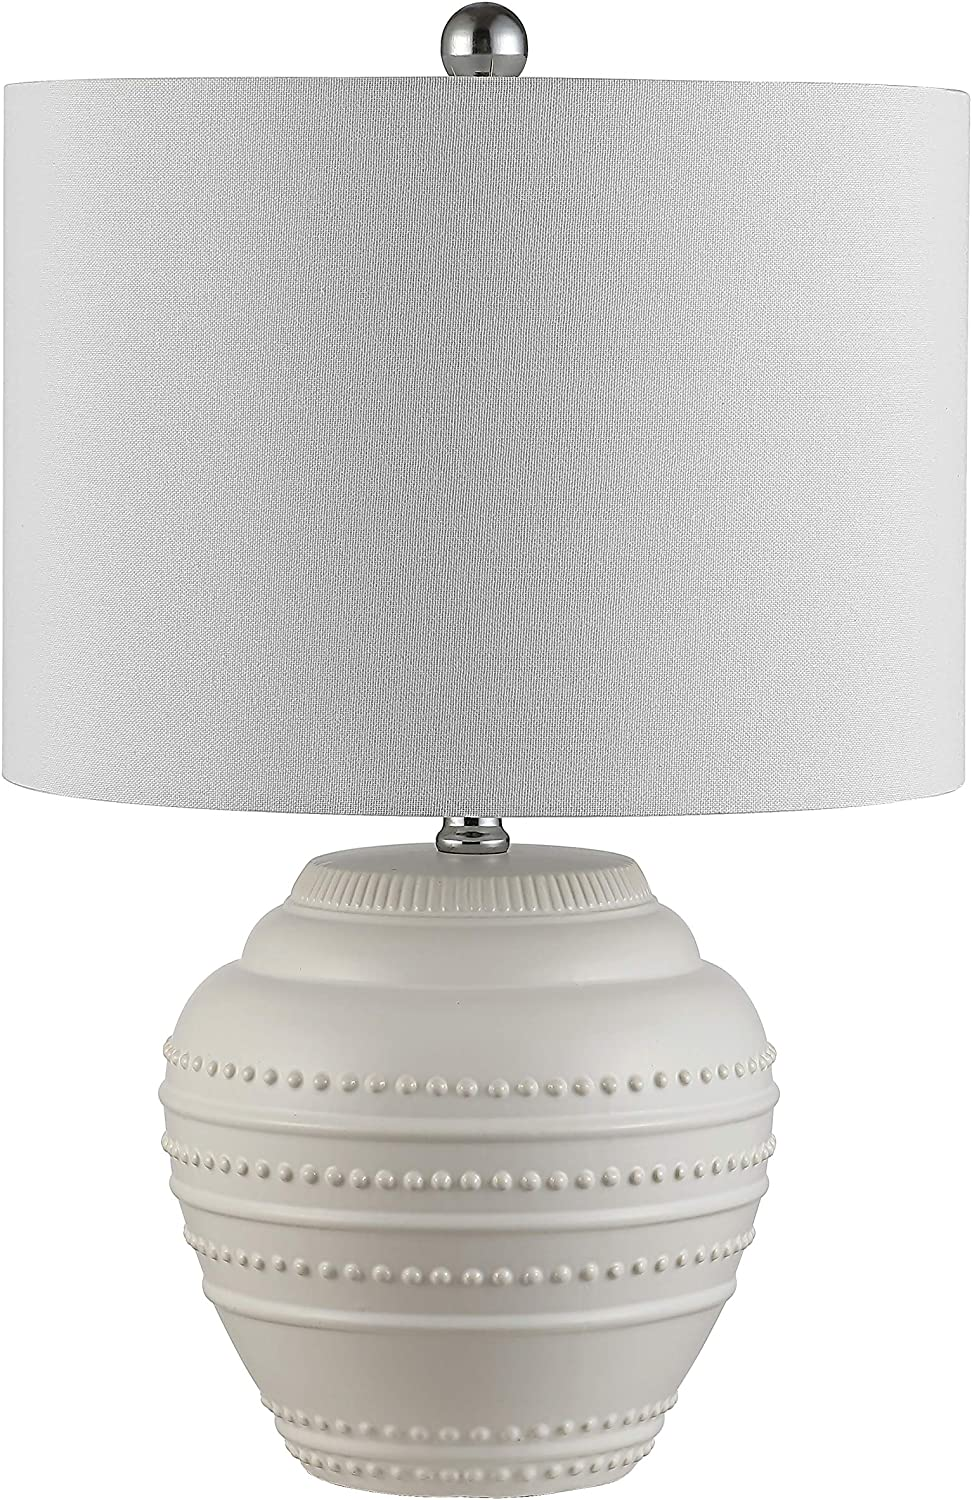 Safavieh Lighting Collection Lenon 22 Inch White Ceramic Table Lamp Led Bulb Included Tbl4347a